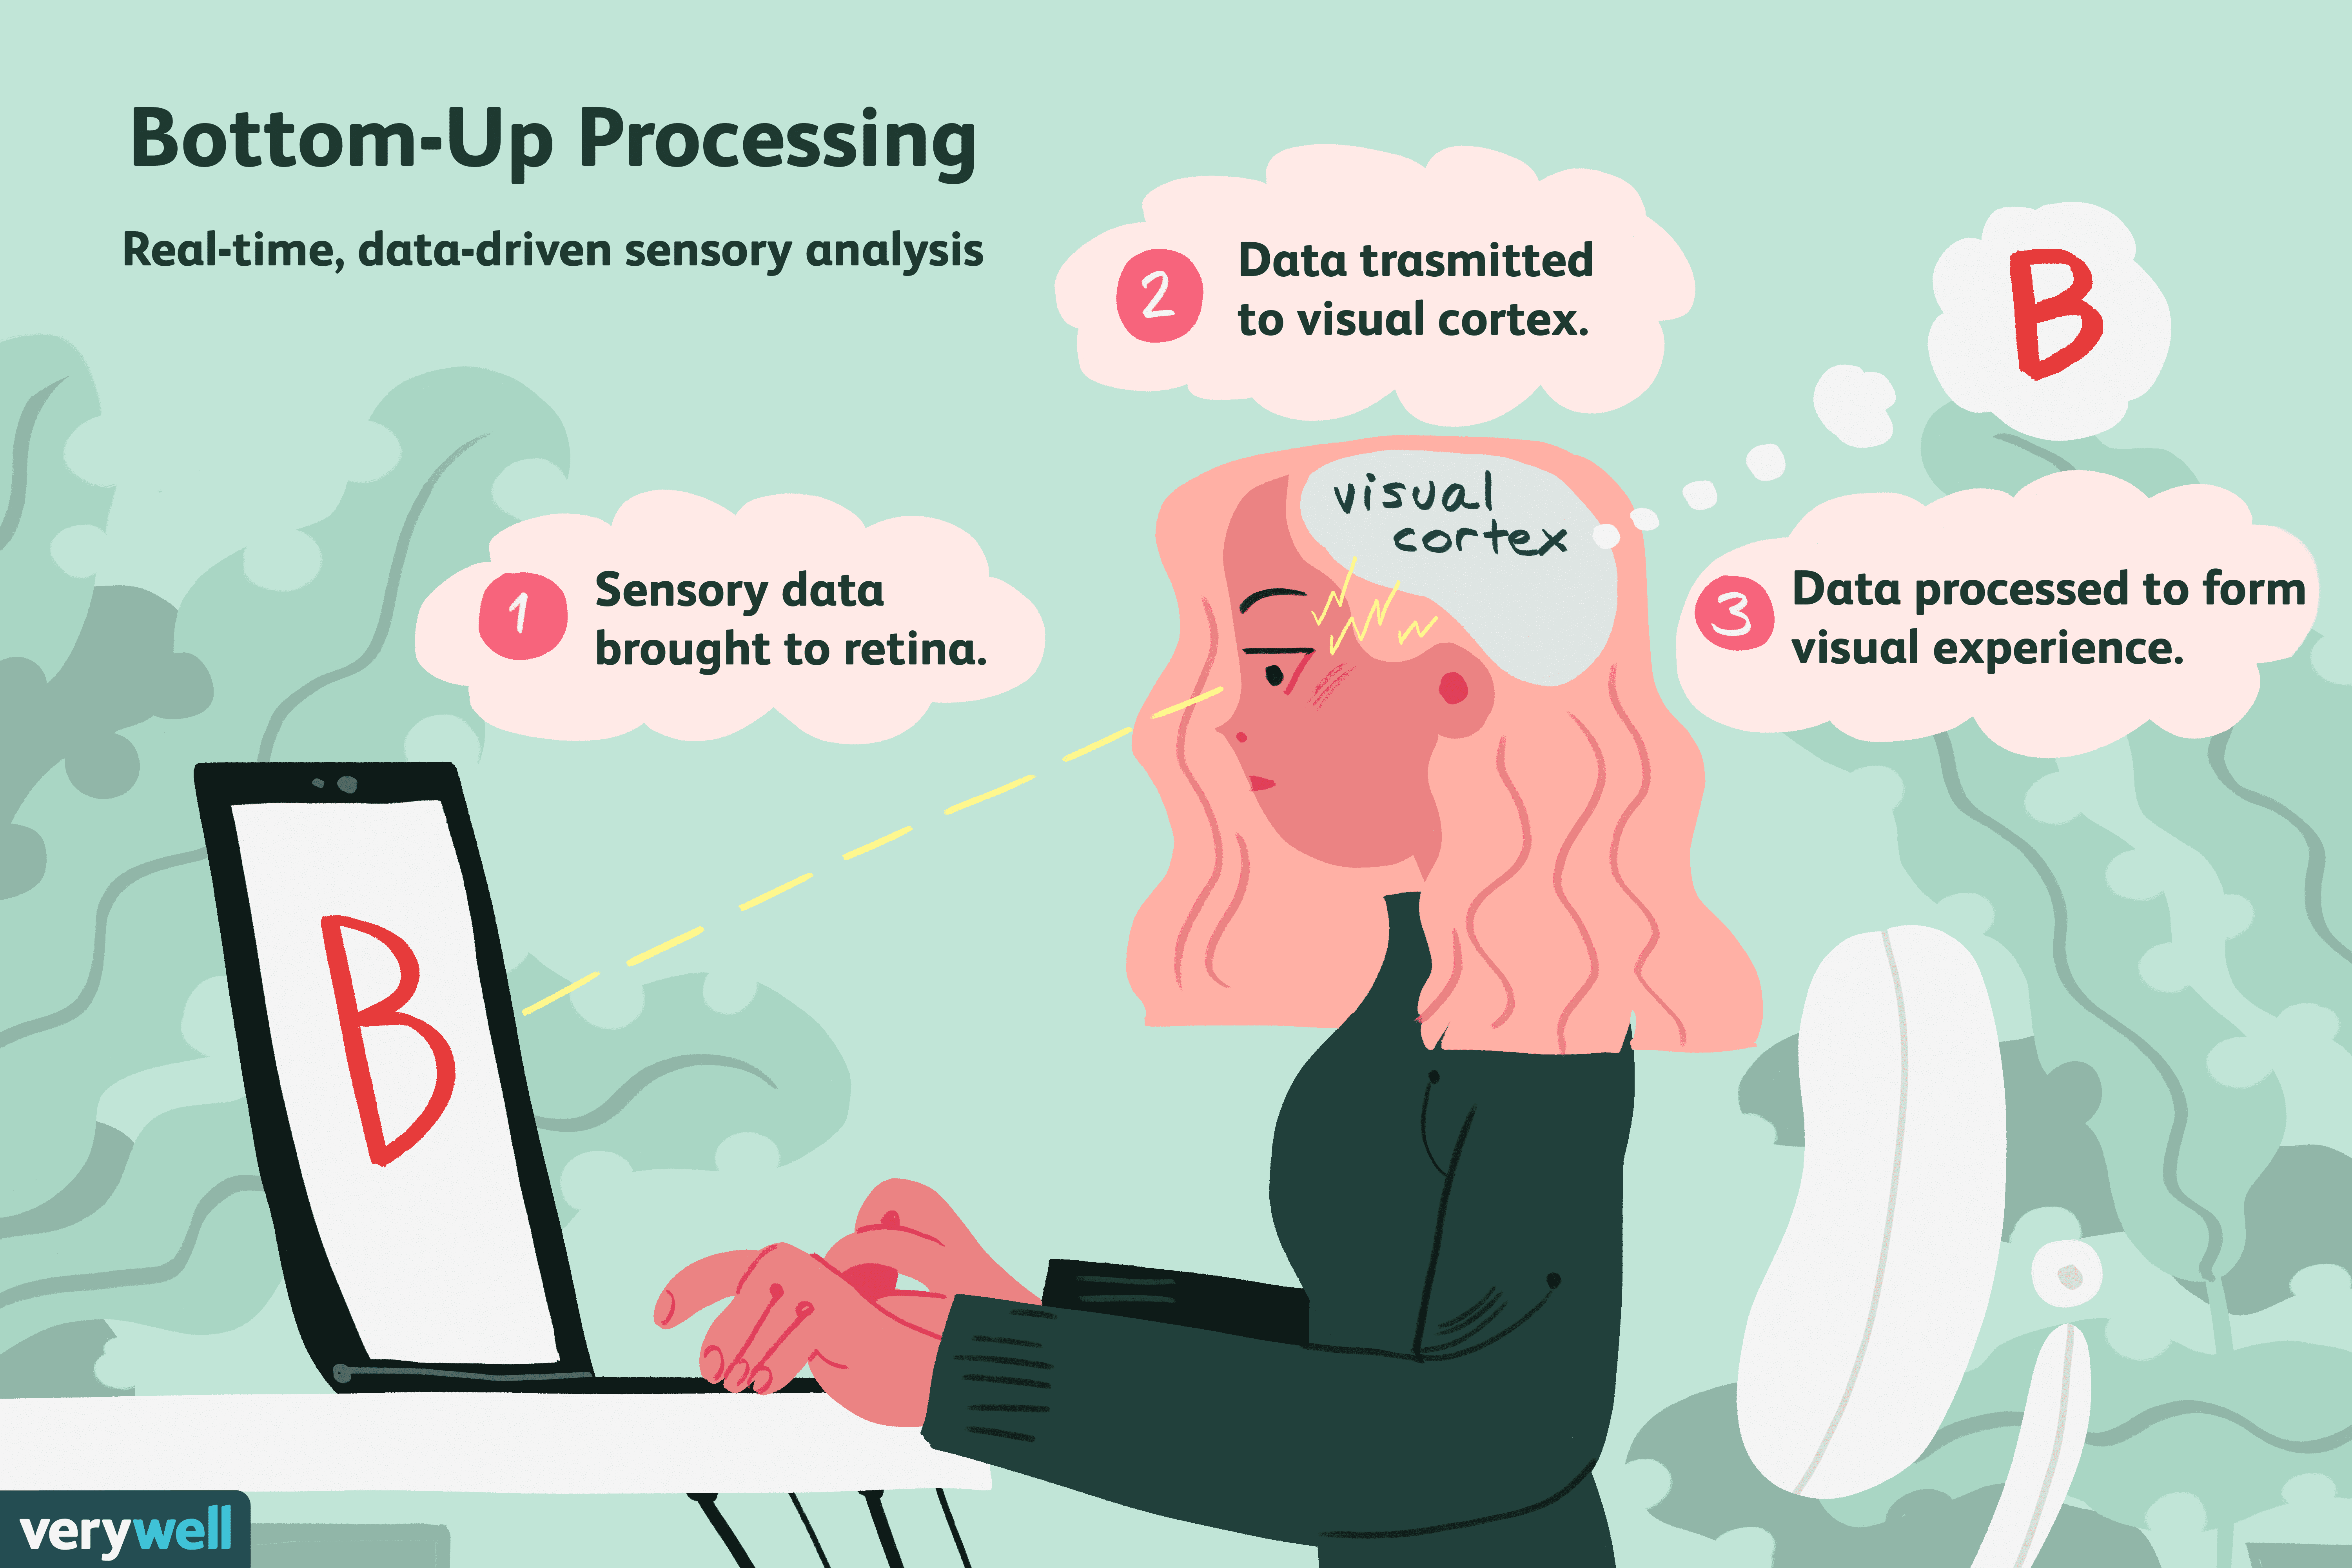 How Bottom Up Processing Works